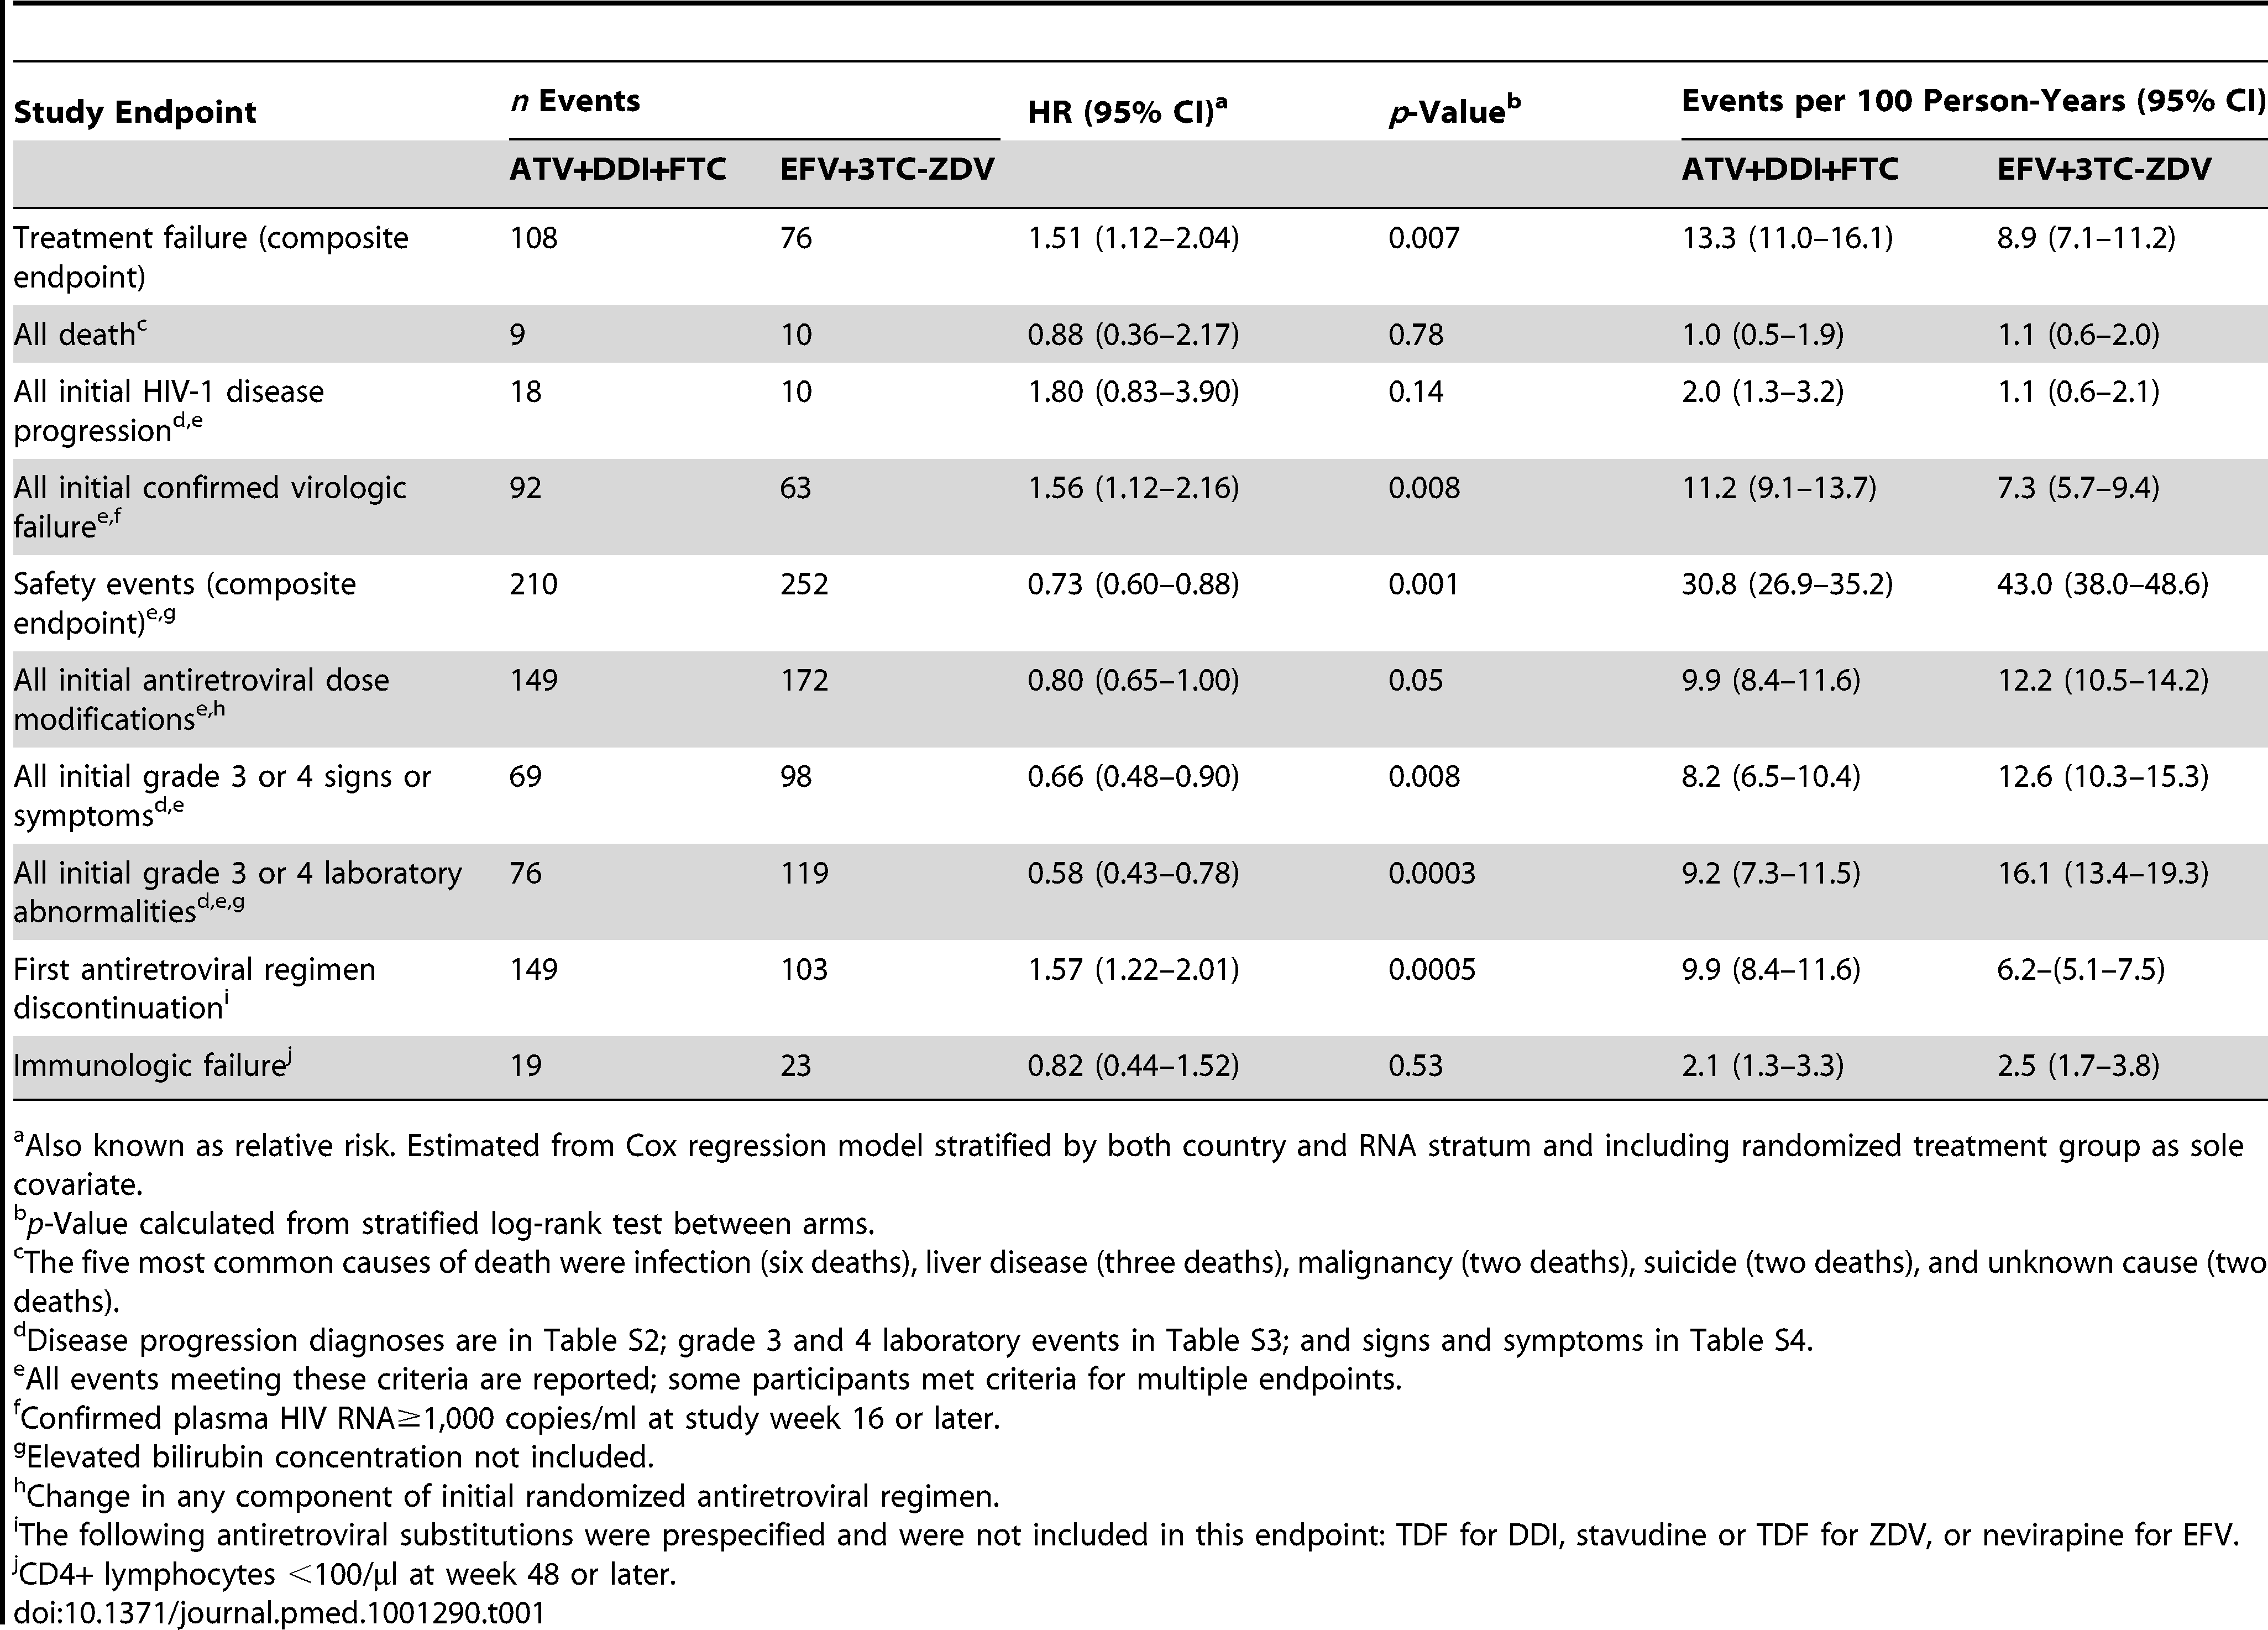 Primary and secondary time-to-event outcomes for the comparison of atazanavir plus didanosine-EC and emtricitabine to efavirenz plus lamivudine-zidovudine using data collected through 22 May 2008.